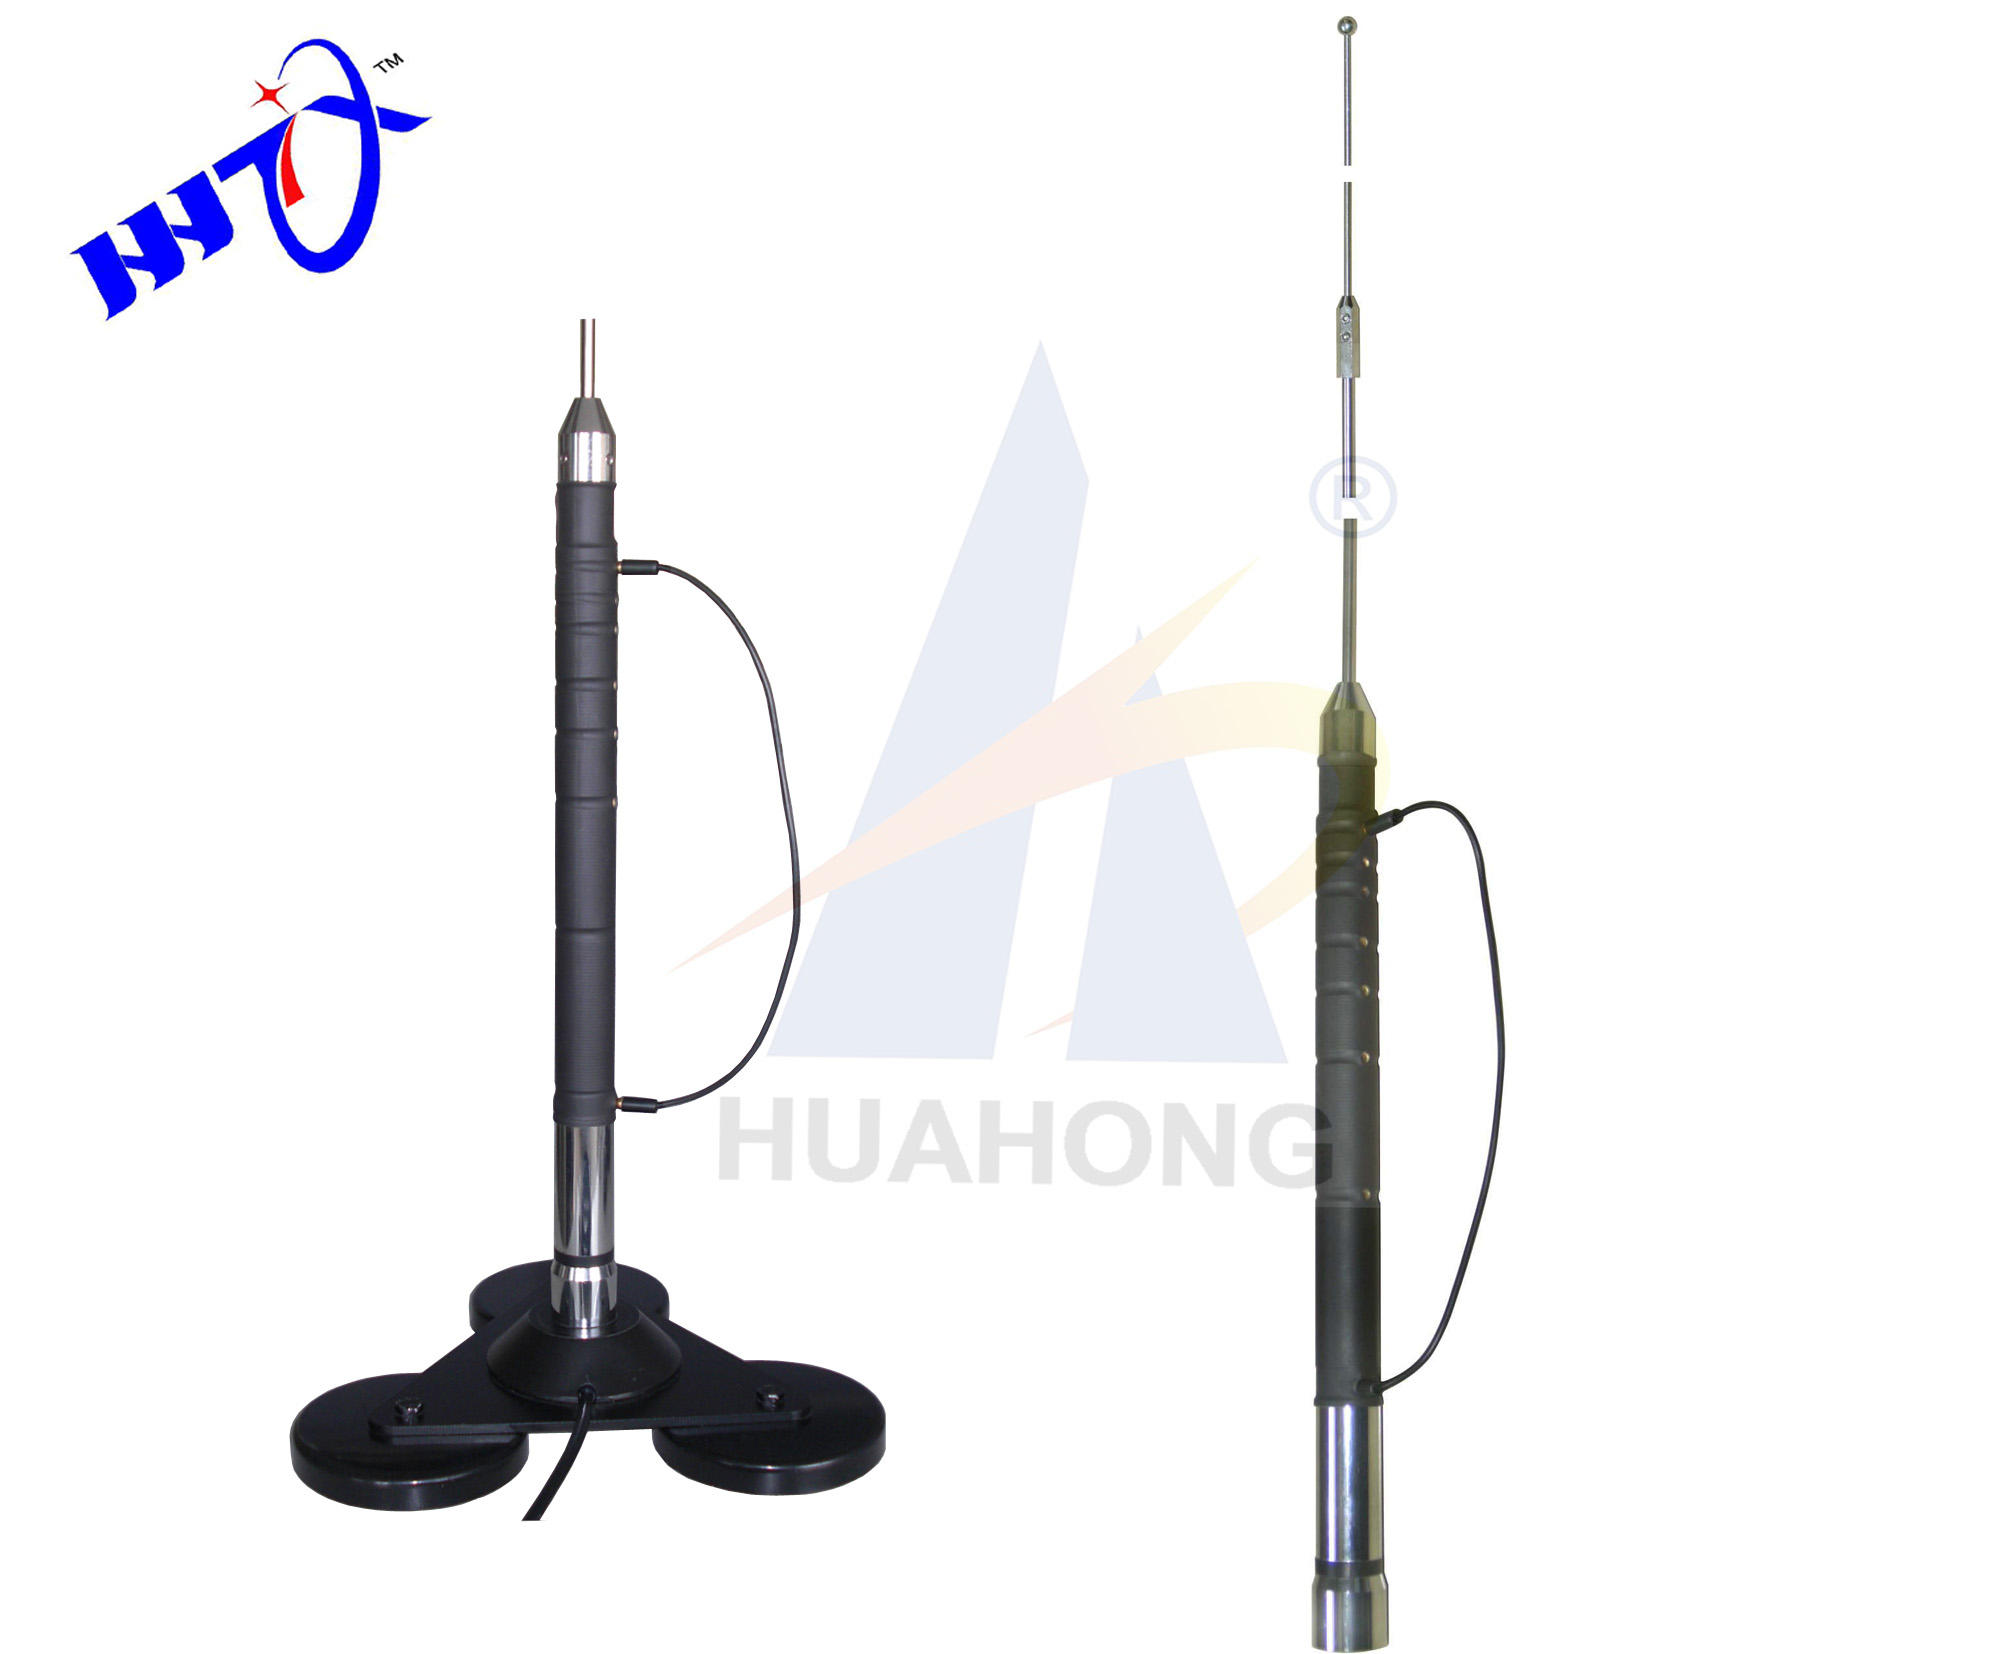 7-50mhz Tunable HF vertical antenna,hf antenna tuner with tri angle magnetic base for Car